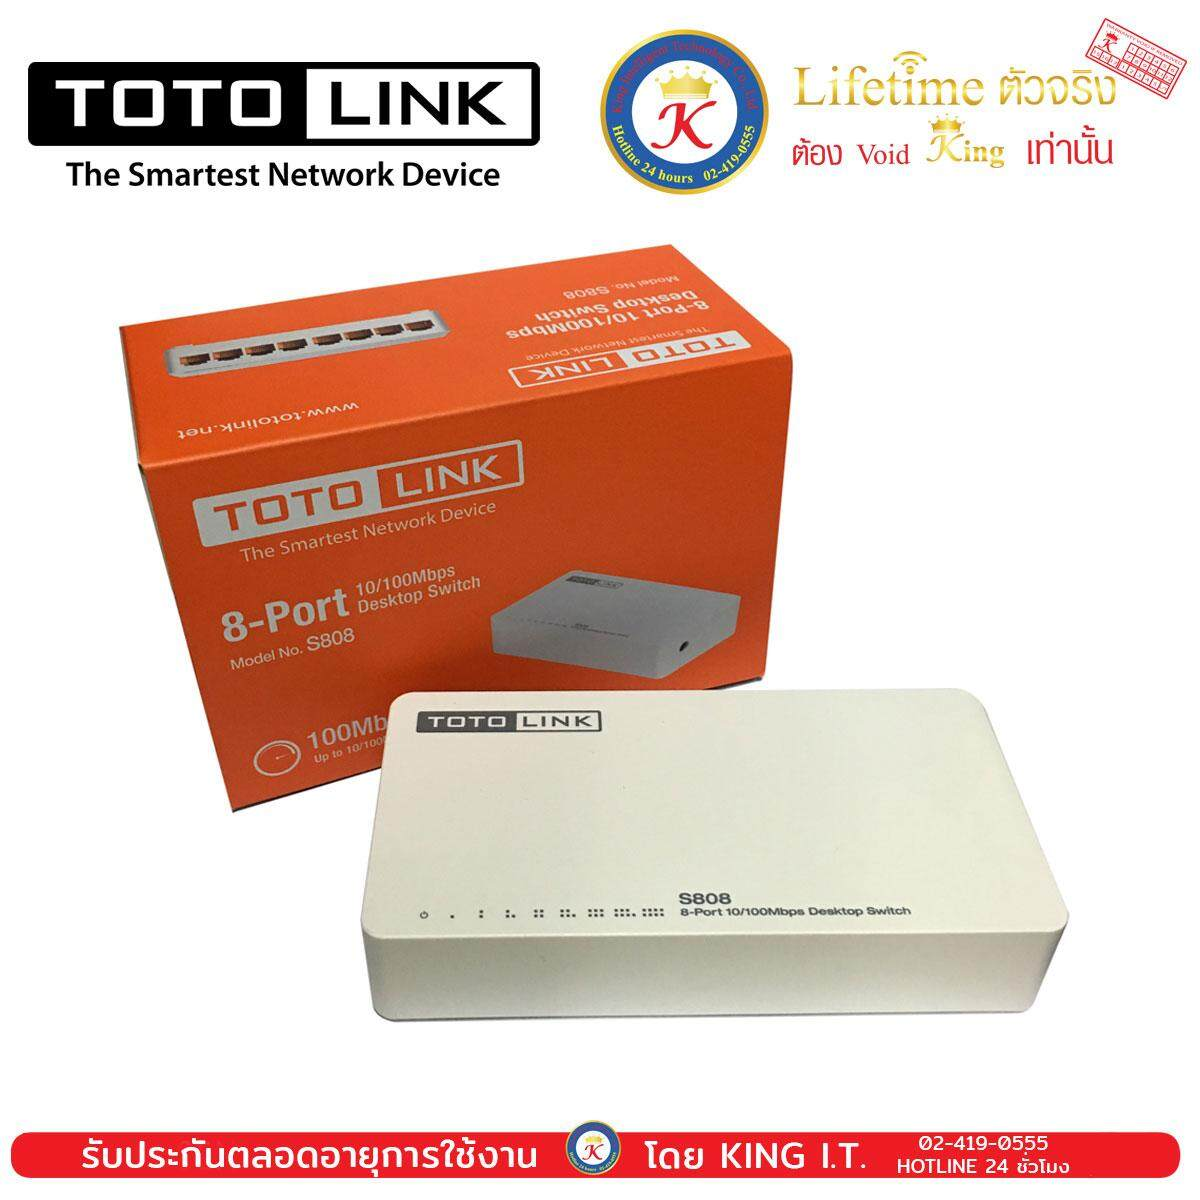 Sell Totolink S808g 2000 Cheapest Best Quality Th Store Pl200kit 200mbps Powerline Adapter Thb 420